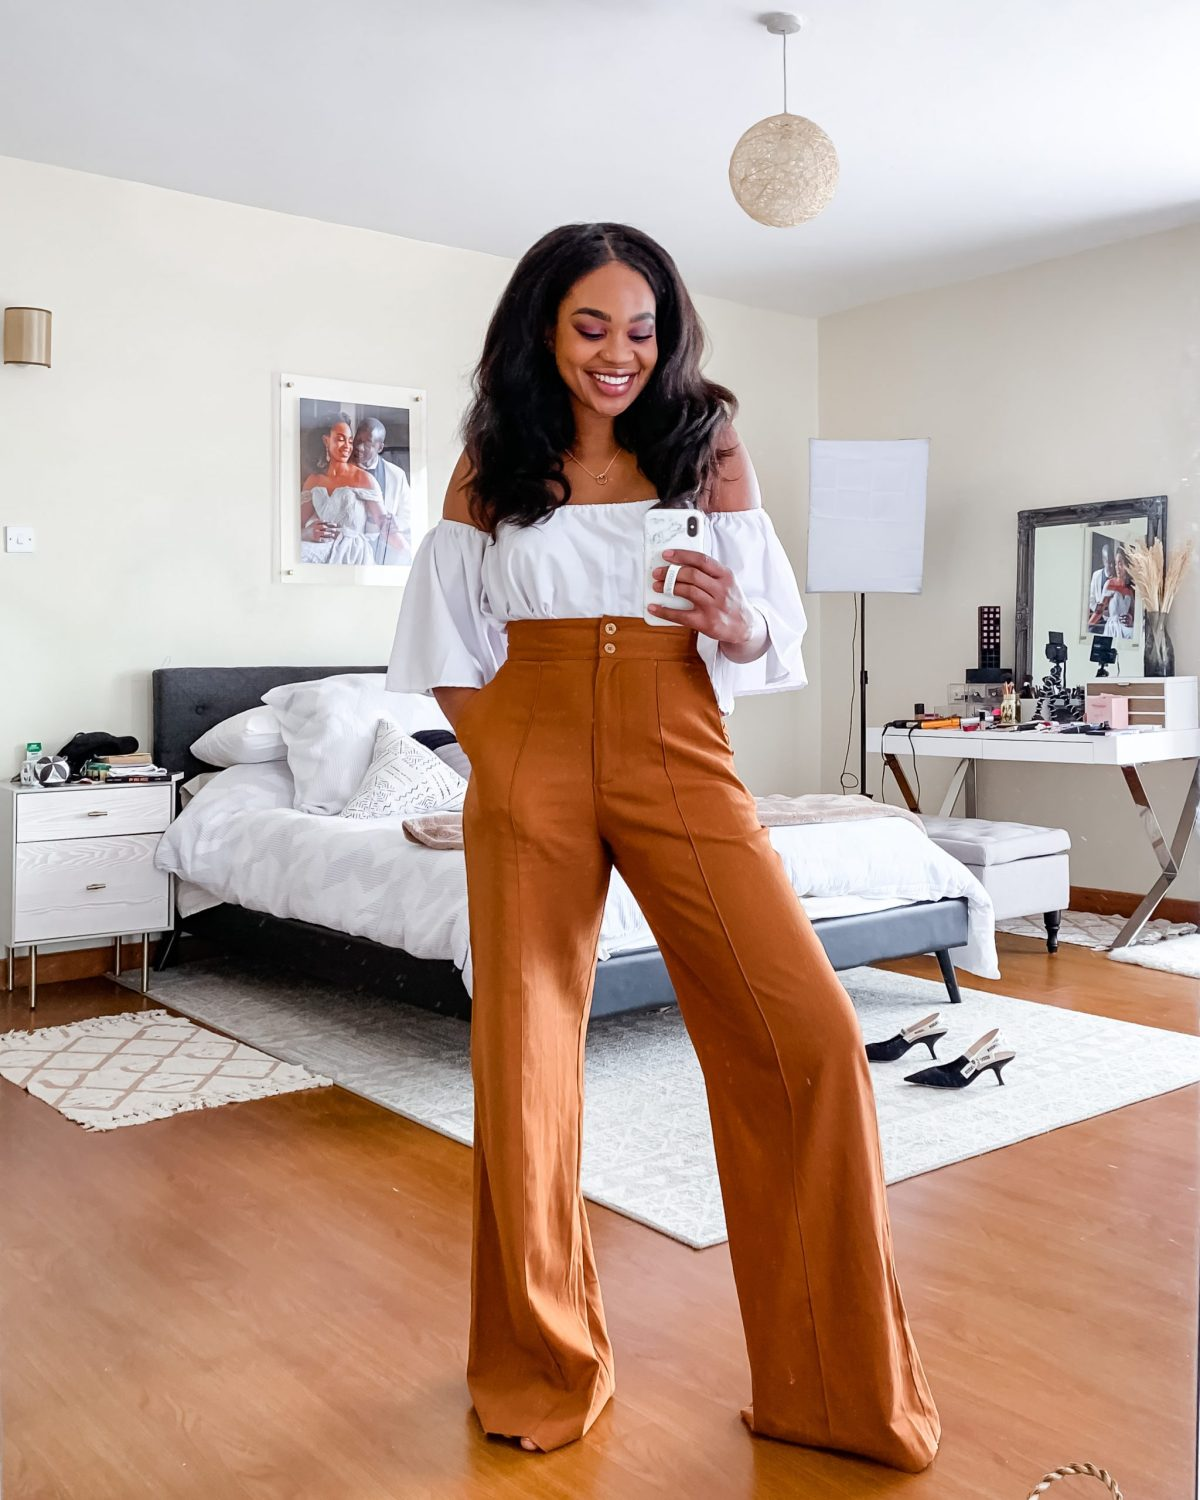 Ijeoma Kola in white top and linen pants